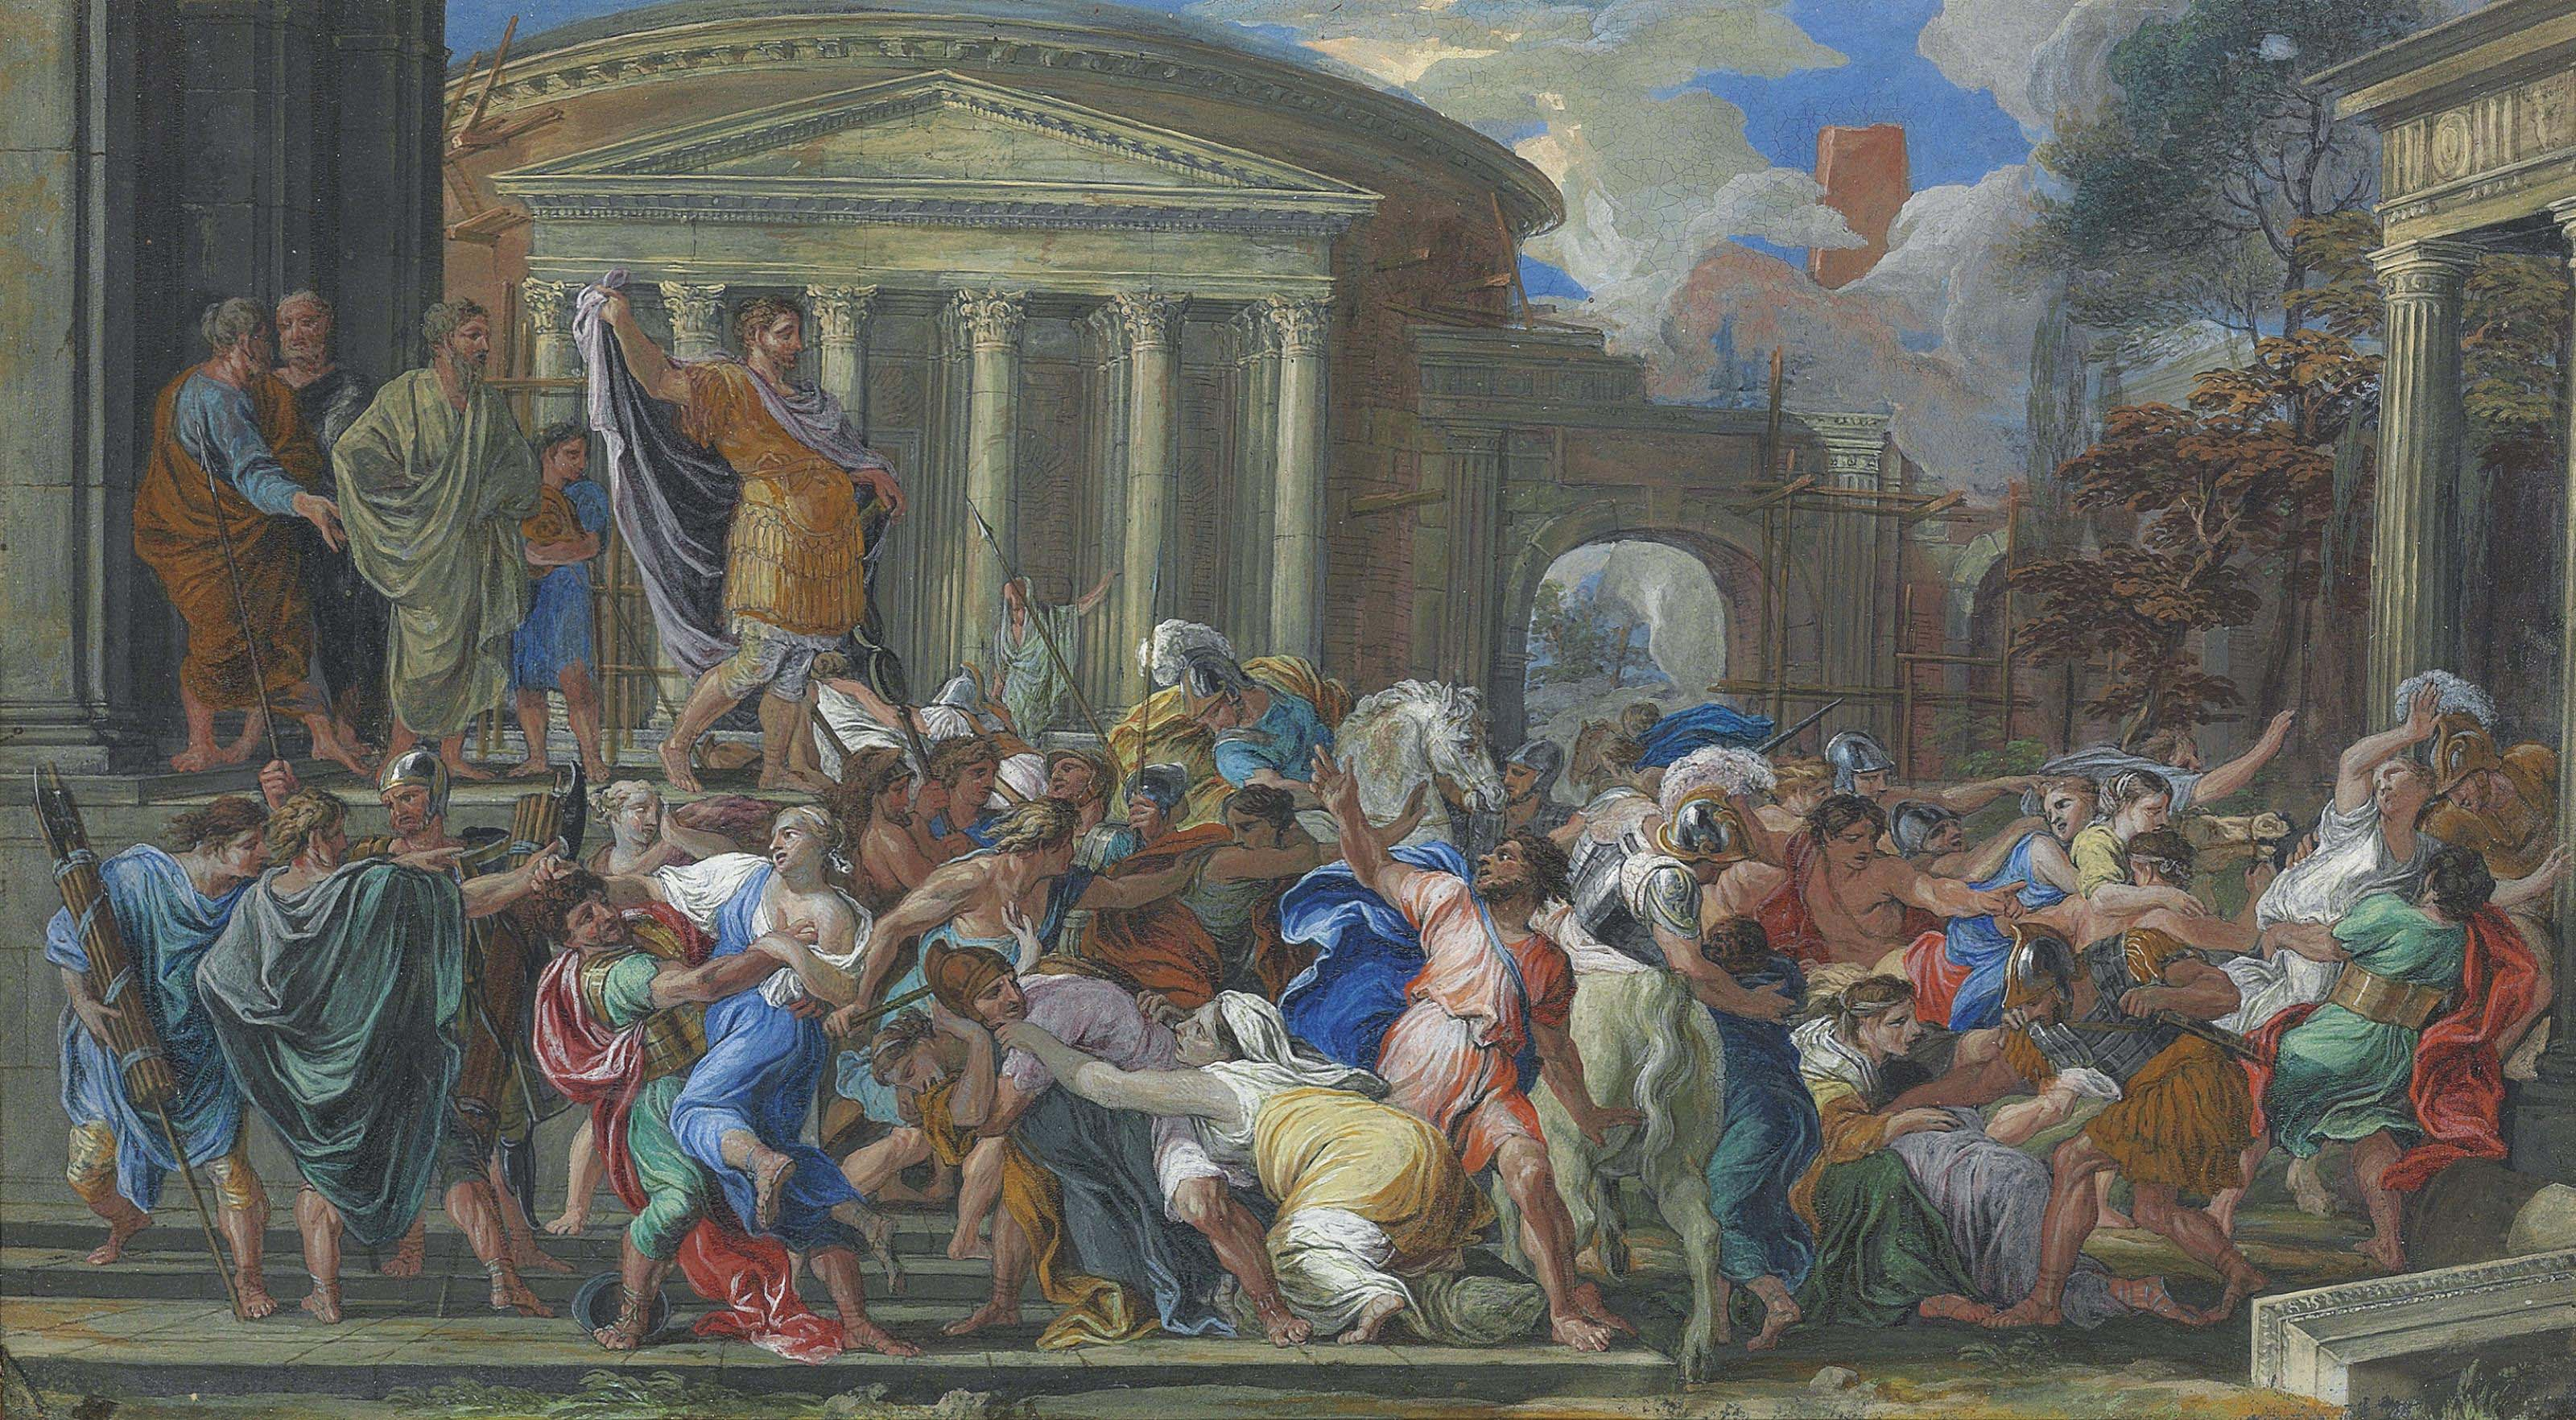 The Rape of the Sabines; and A classical hero ordering a sacrifice to Jupiter on the steps of the Temple of Minerva